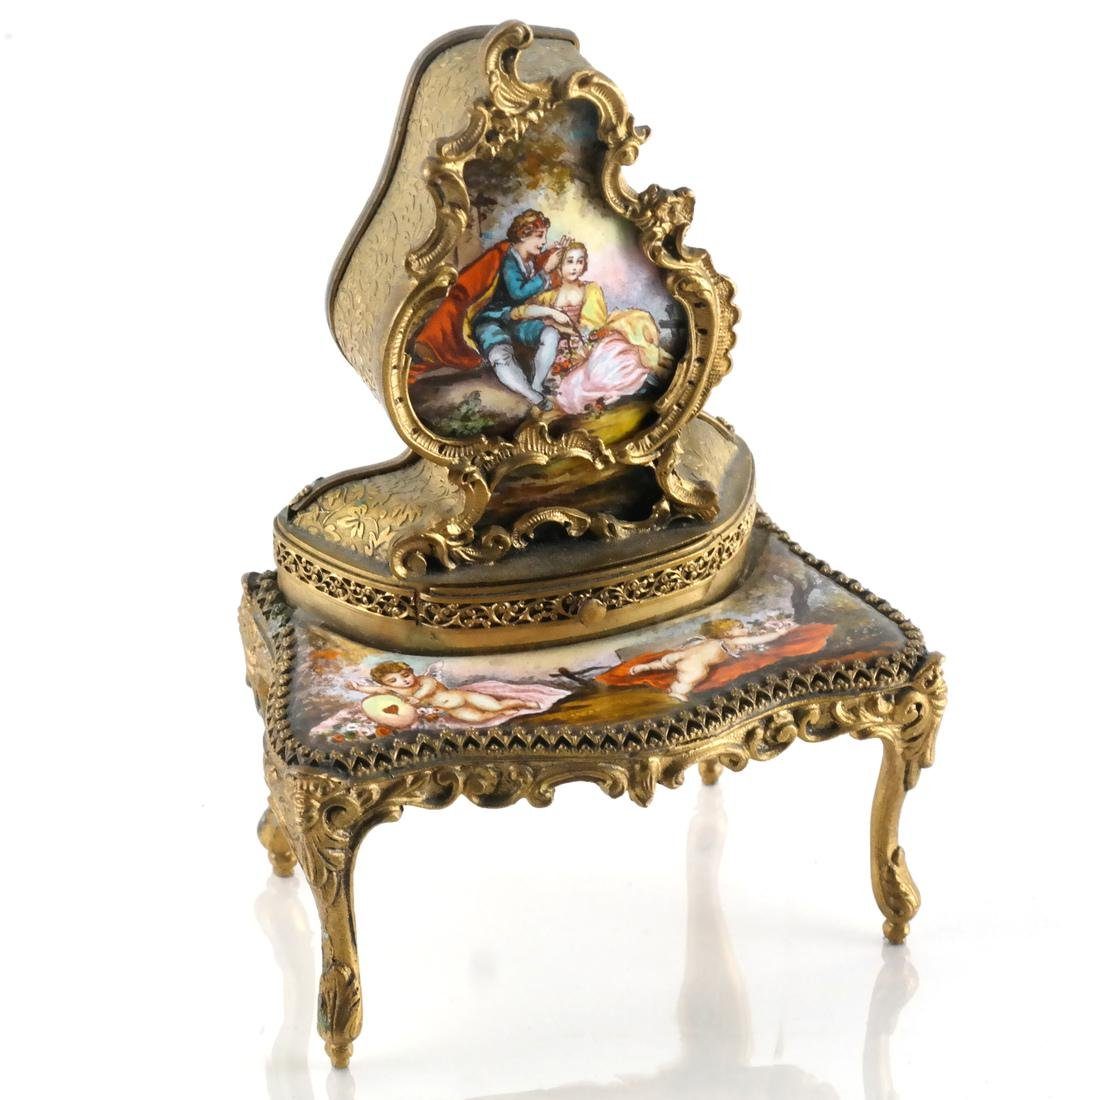 Viennese Enamel Desk-Form Music Box